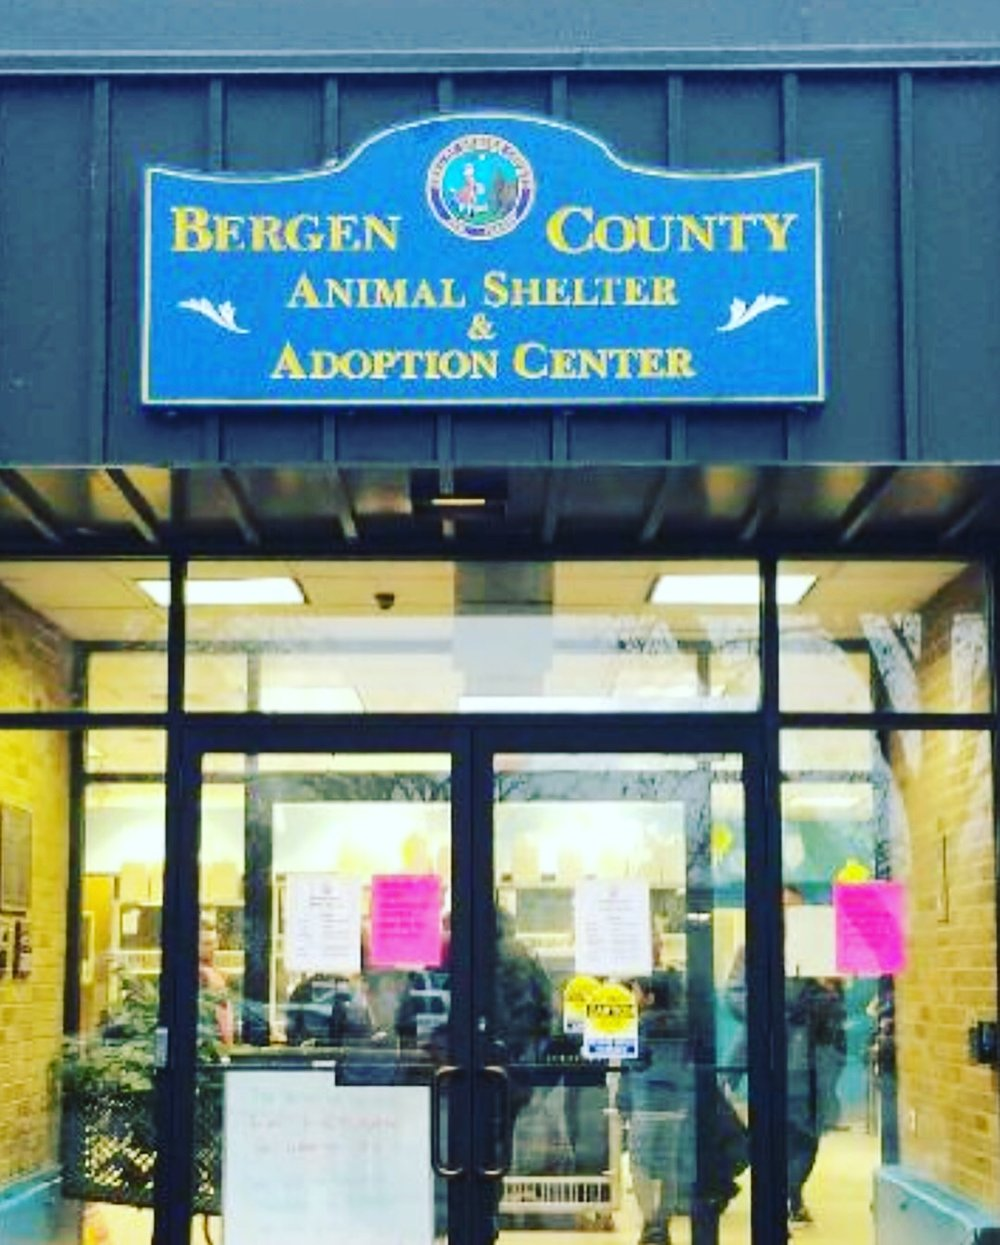 Supporting a local Animal Shelter